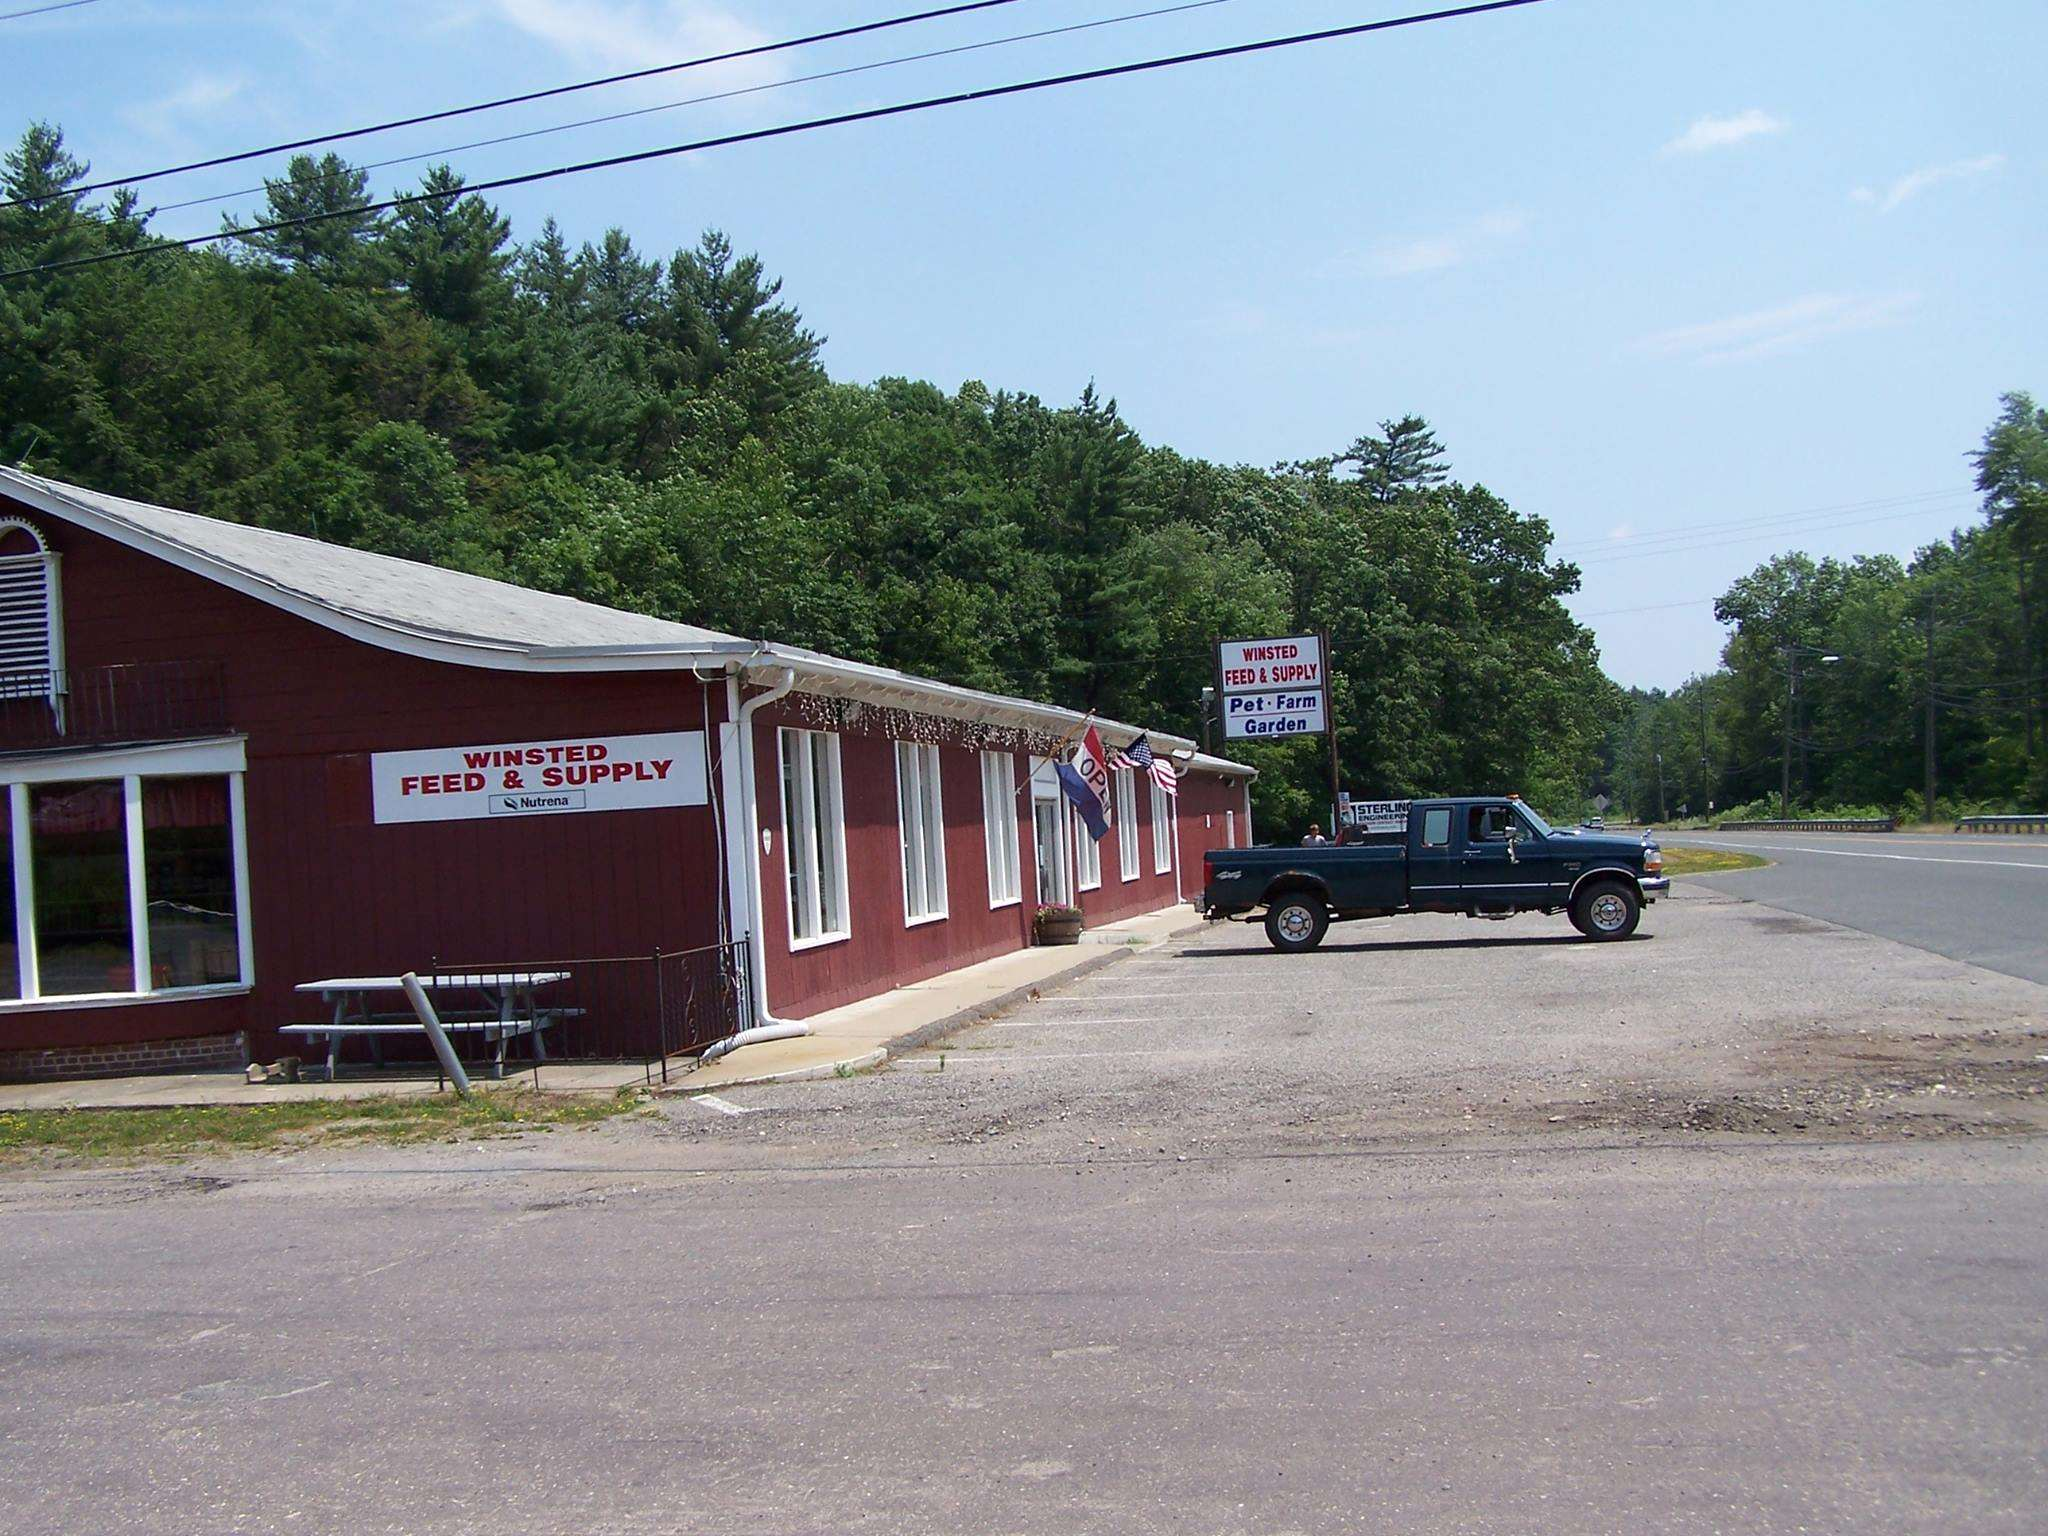 Winsted Feed & Supply